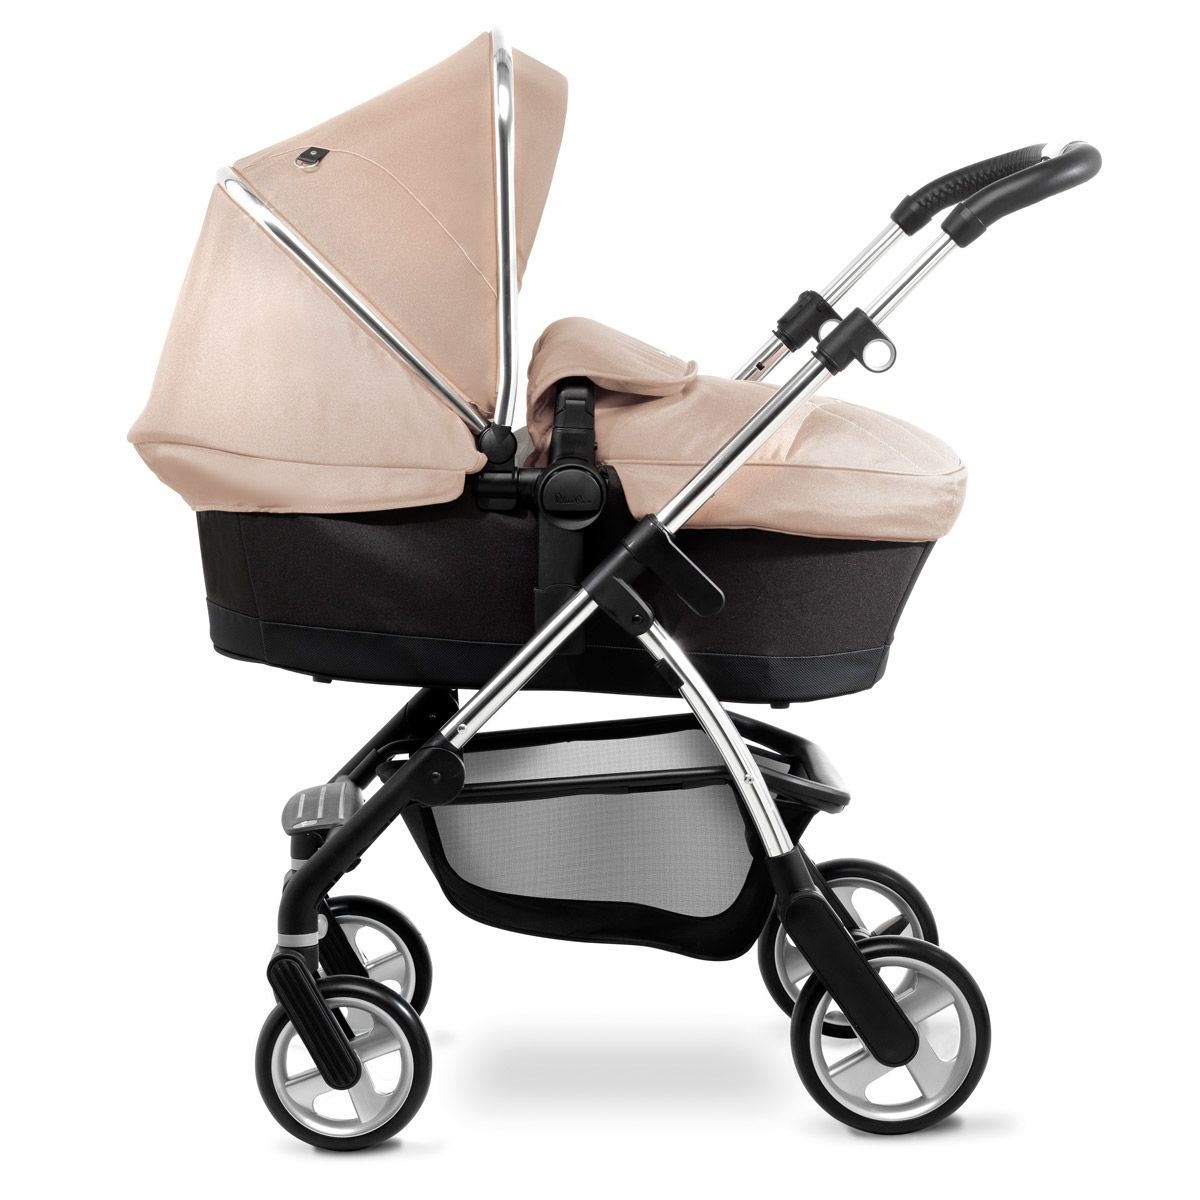 Baby Pram Stroller Pushchair + Car Seat Carrycot Buggy Travel System The Silver Cross Wayfarer Pram System In Carrycot Mode